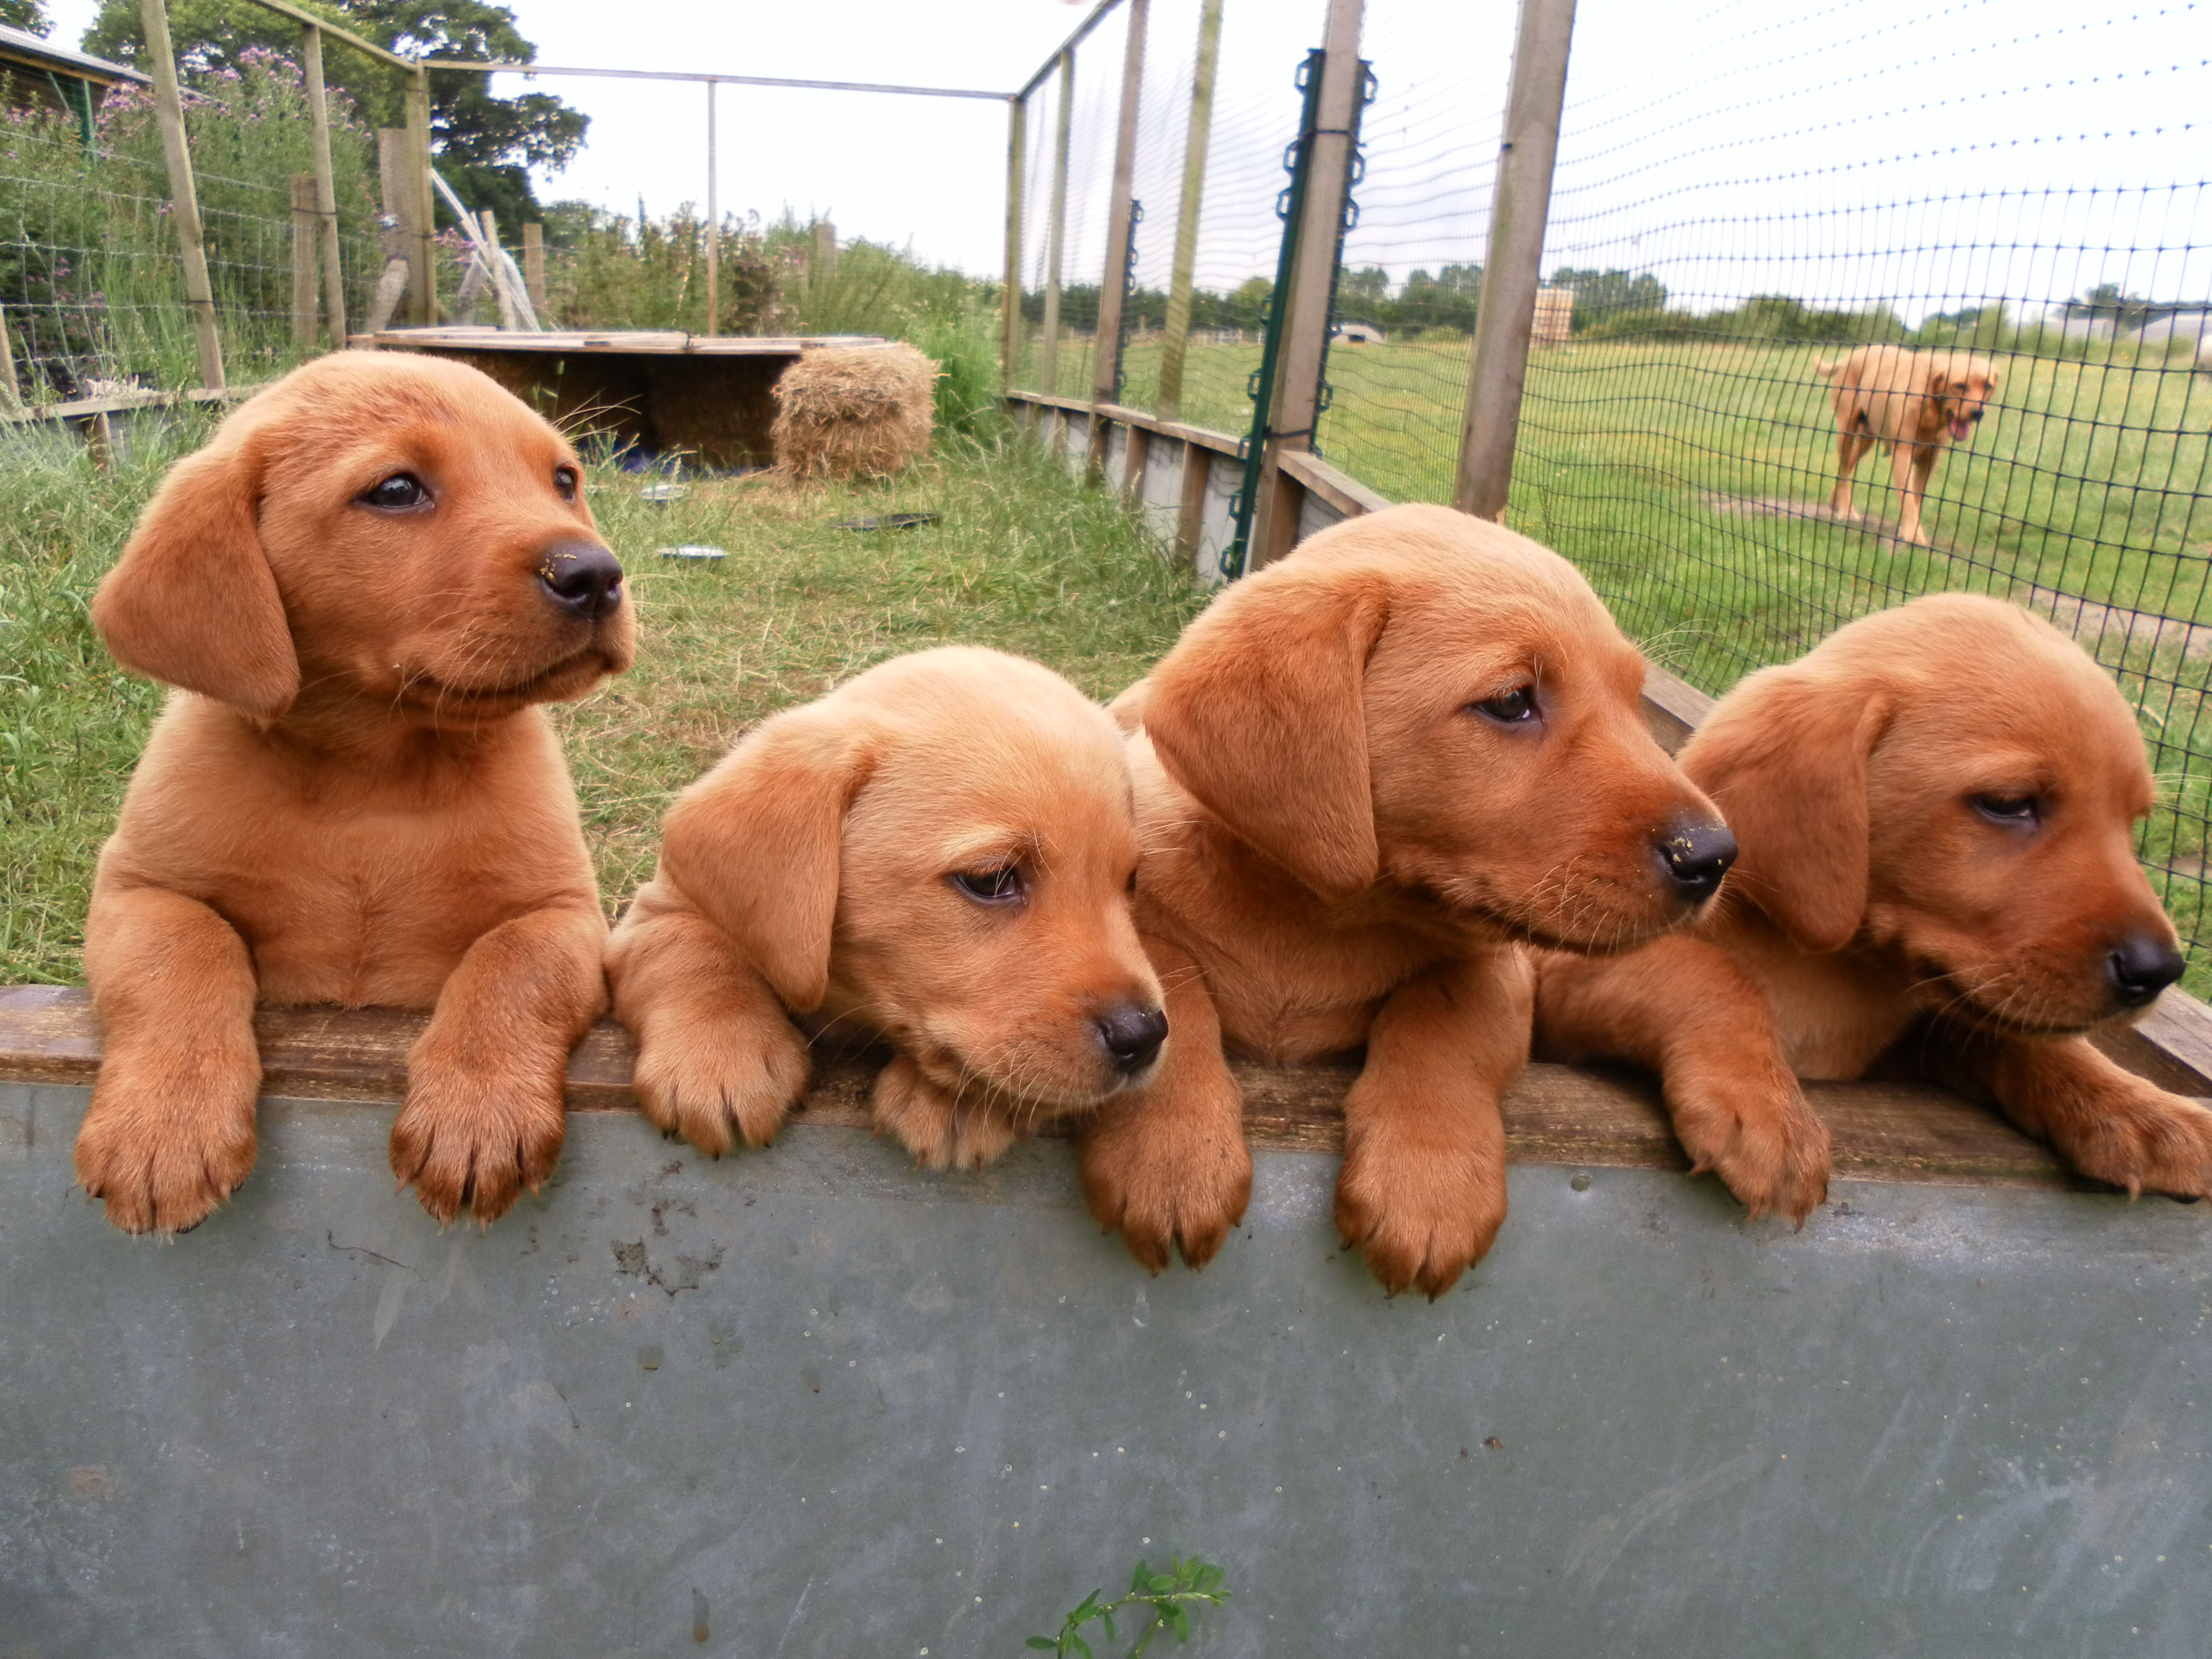 Husky puppies for adoption in california - Fox Red Lab Puppies Awww I Have Never Seen This Color Of Lab Before